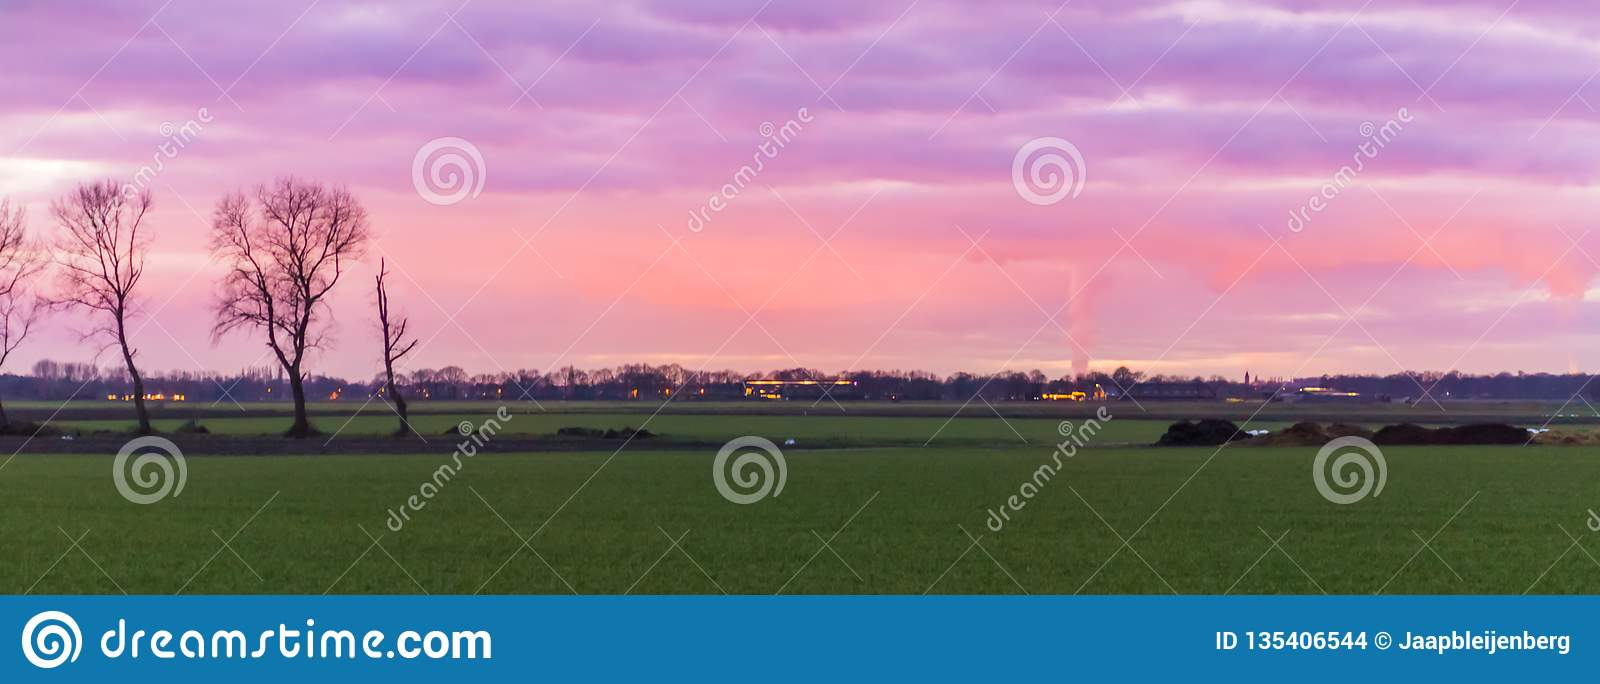 Beautiful dutch landscape of a grass field with buildings in the distance, nacreous clouds coloring the sky pink and purple, a